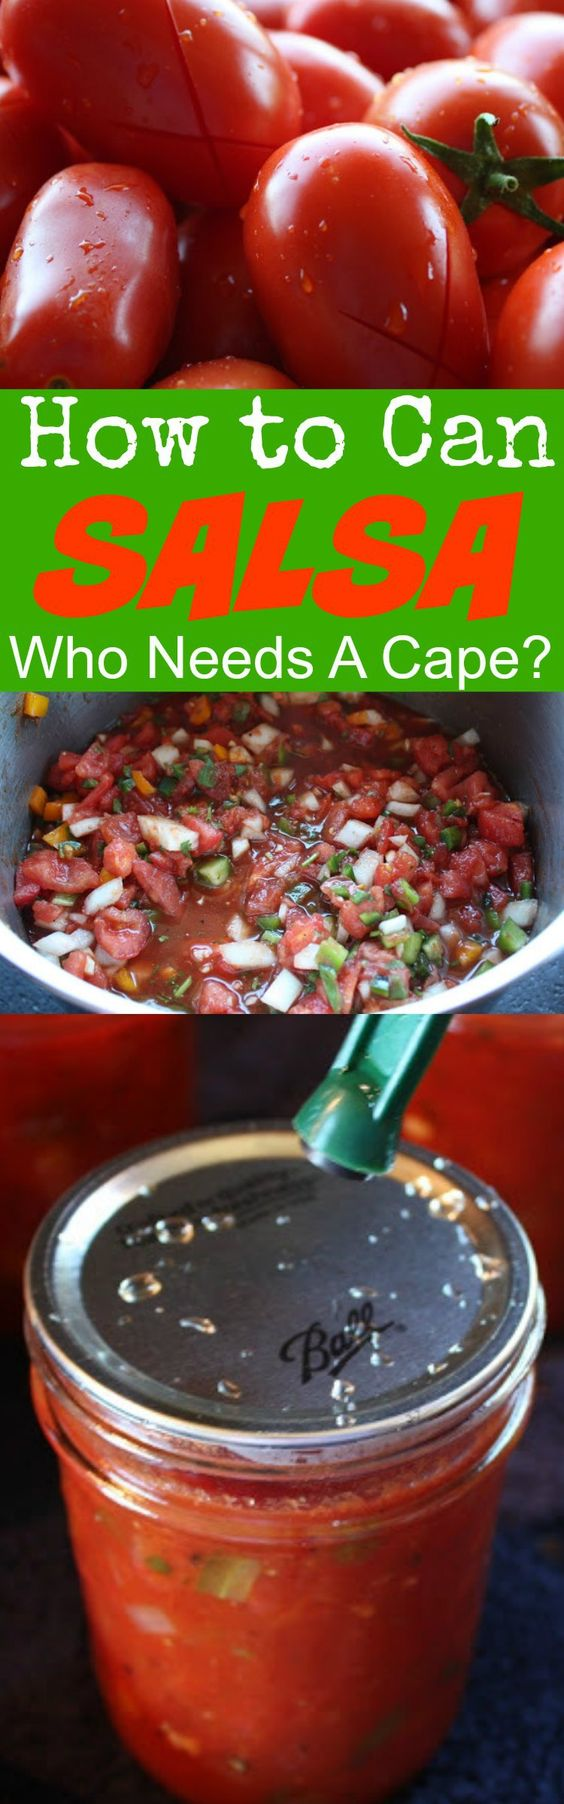 How to Can Salsa   Who Needs A Cape?